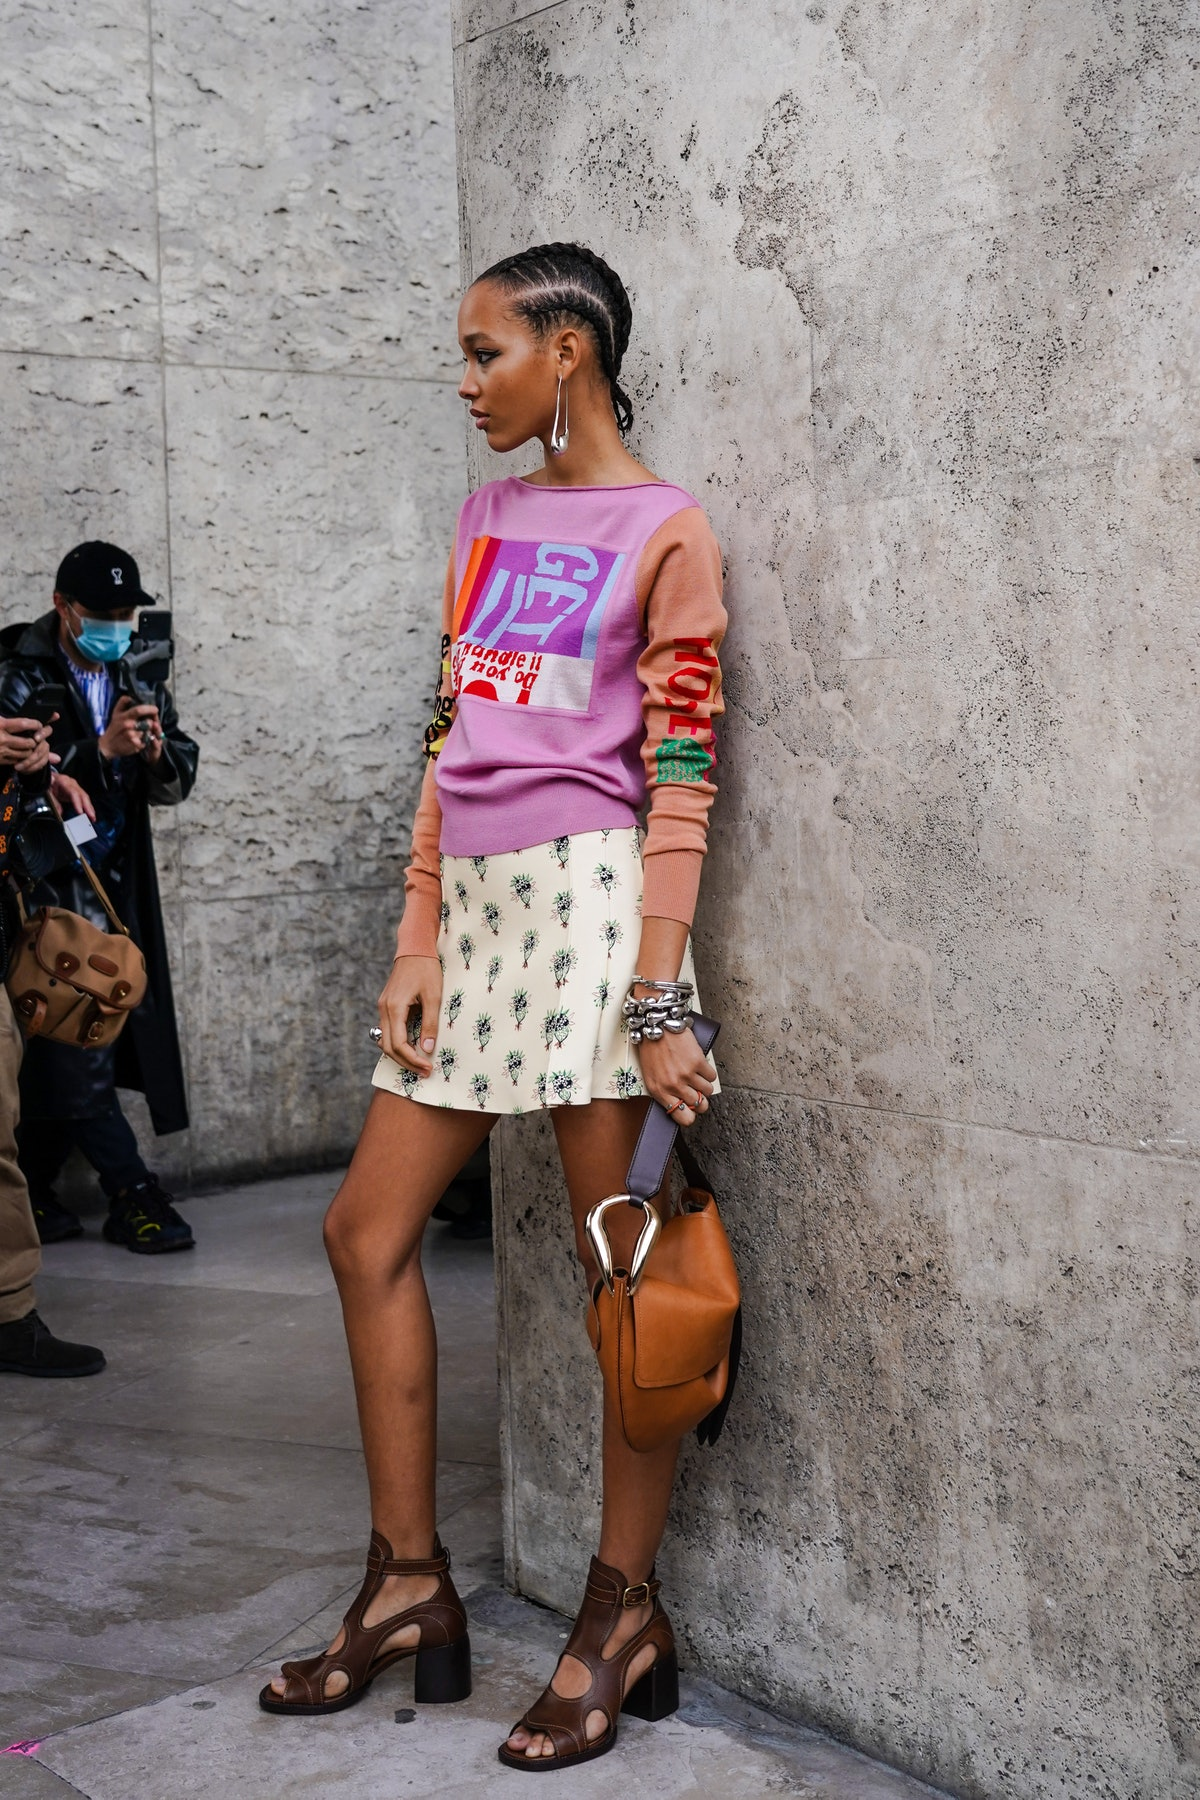 PARIS, FRANCE - OCTOBER 01: A guest wears an earring, rings, bracelets, a colorful top, a white mini skirt with green patterns, a Chloe bag, dark brown ankle-strap sandals with block heels, outside Chloe, during Paris Fashion Week - Womenswear Spring Summer 2021, on October 01, 2020 in Paris, France. (Photo by Edward Berthelot/Getty Images)